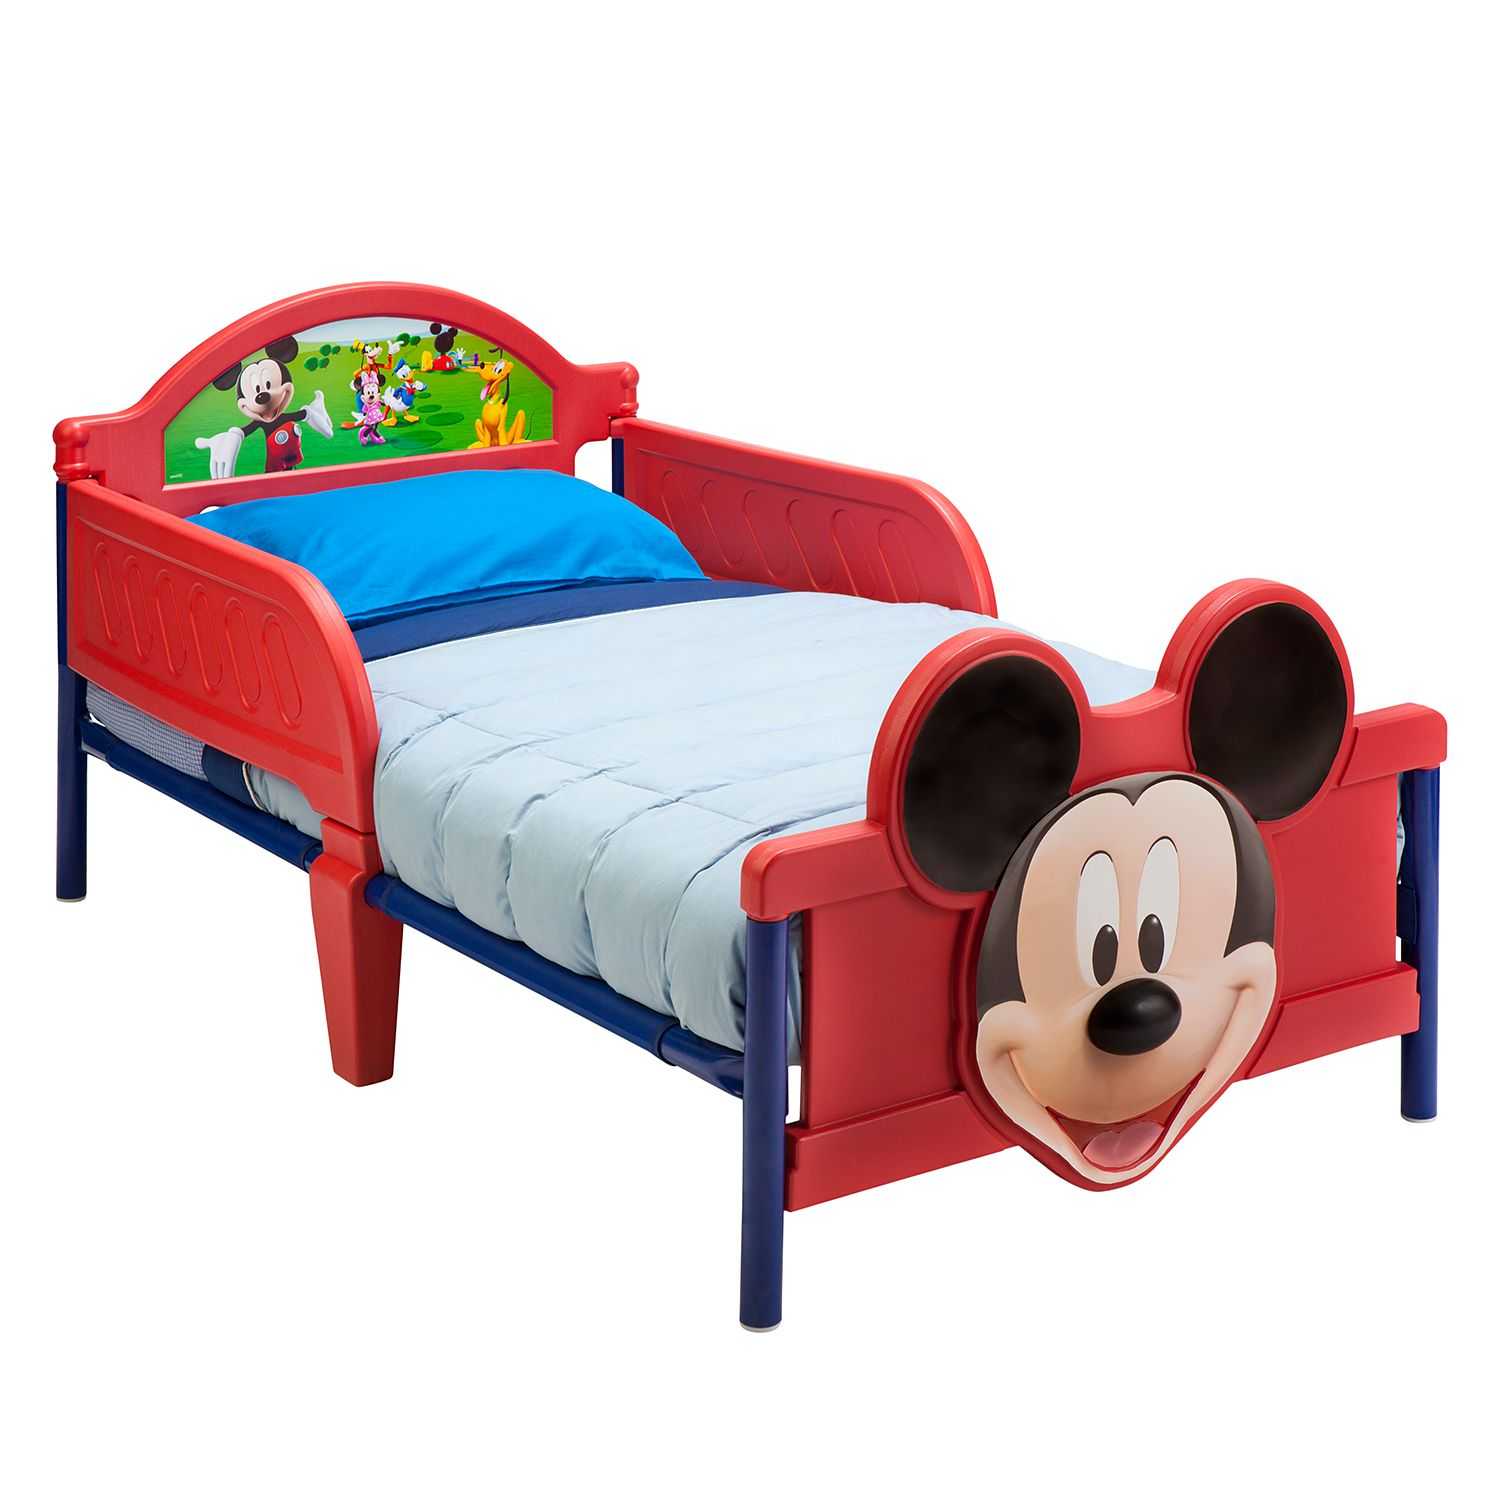 pin bett micky mouse on pinterest. Black Bedroom Furniture Sets. Home Design Ideas